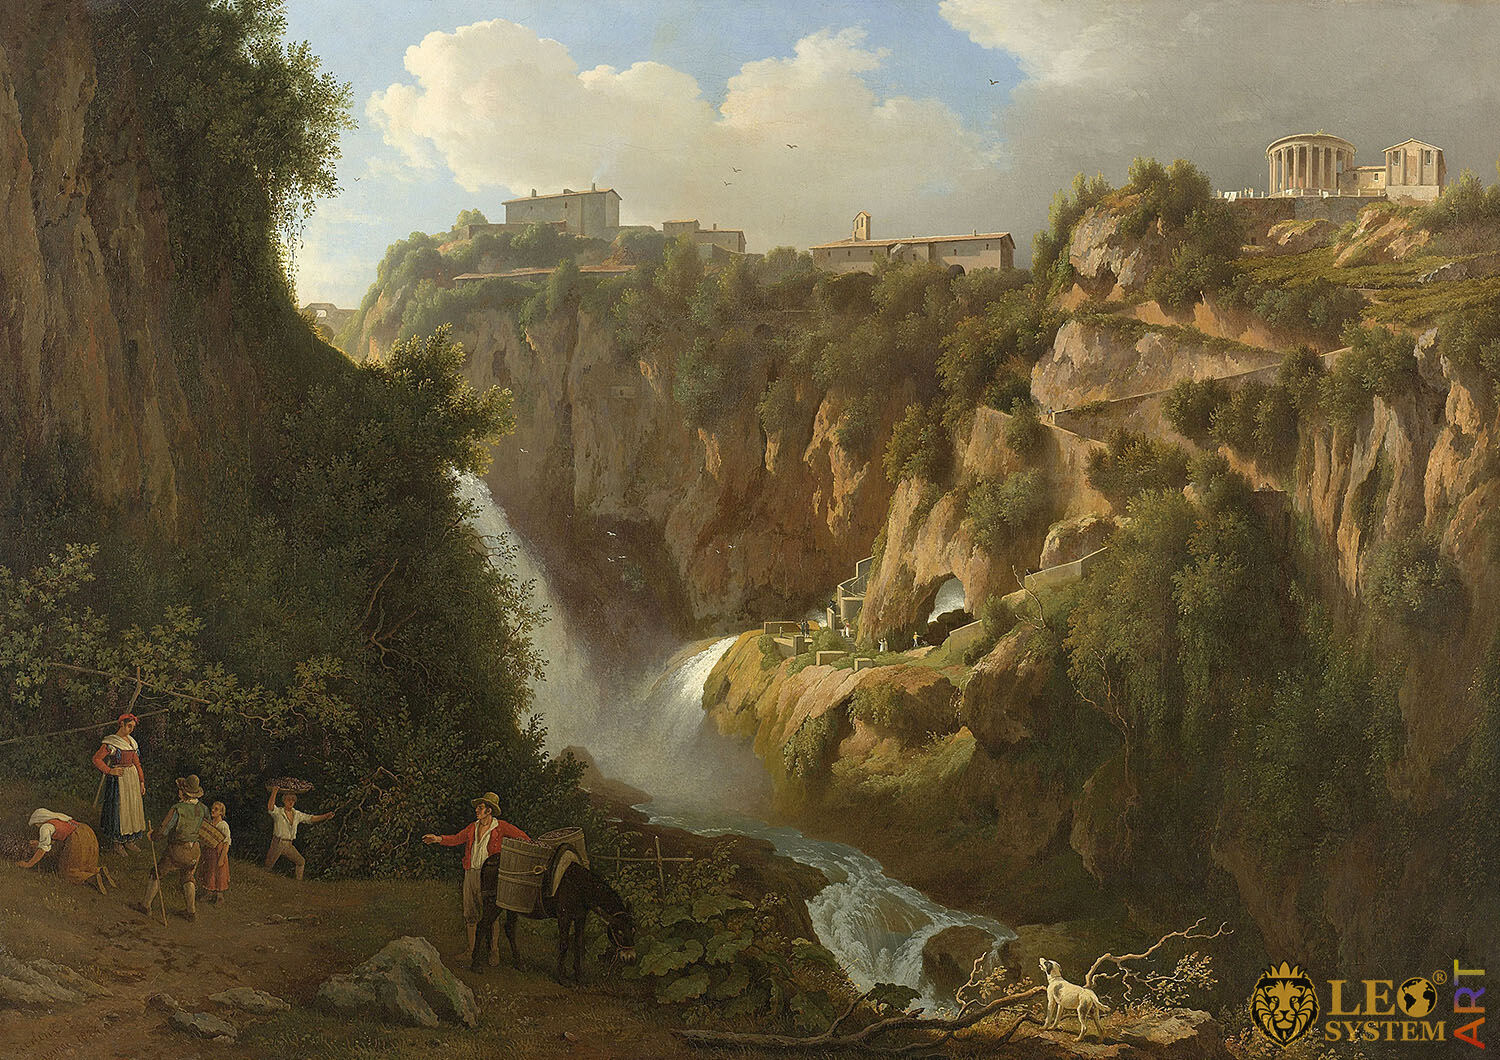 The Waterfall at Tivoli, Painter: Abraham Teerlink, 1824, Dutch Painting, Original Painting